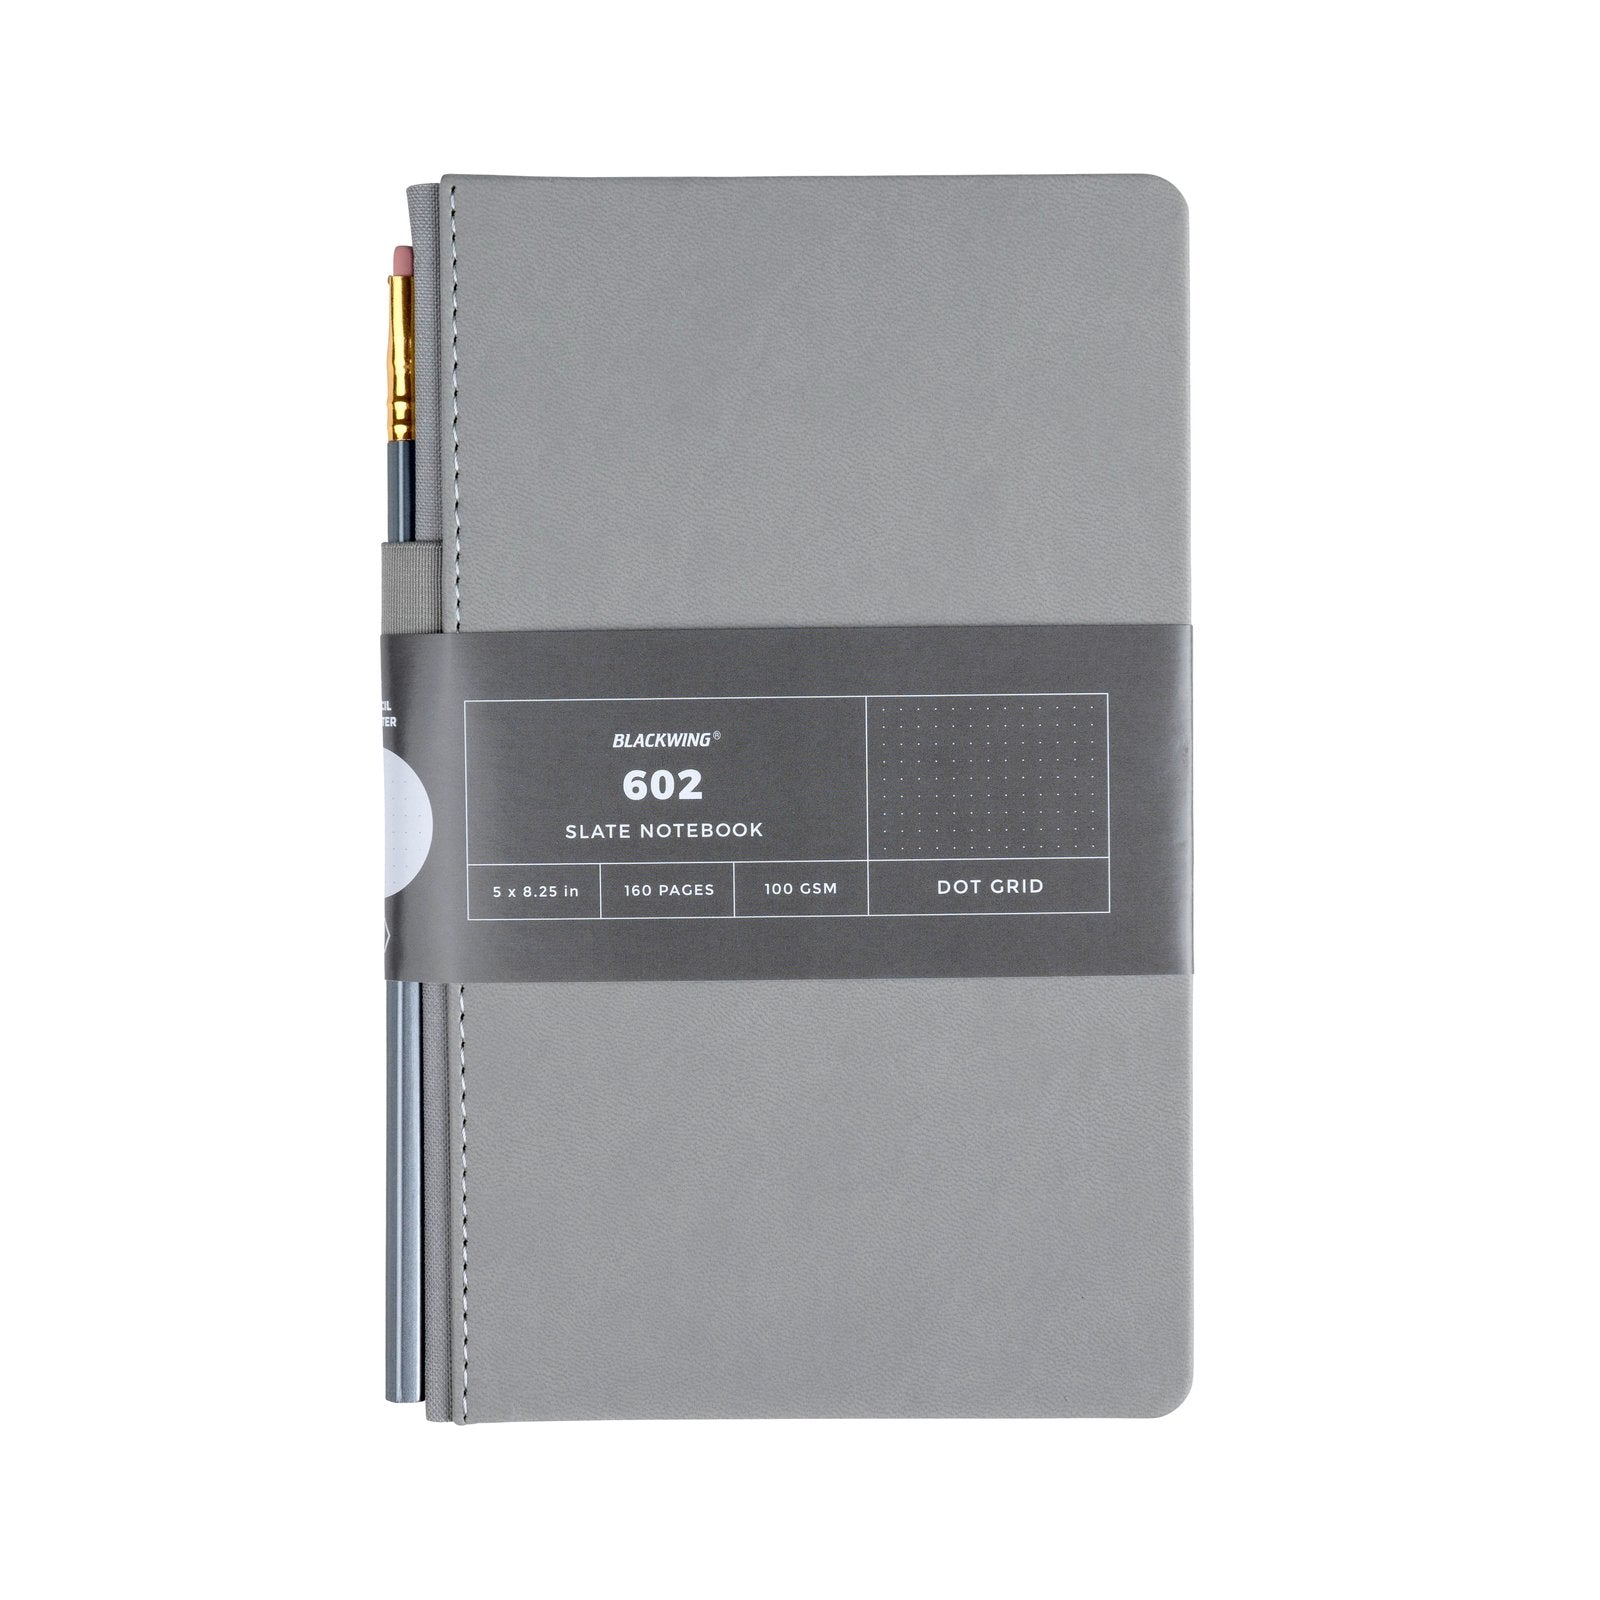 Blackwing 602 Slate Notebooks Graphite Gray